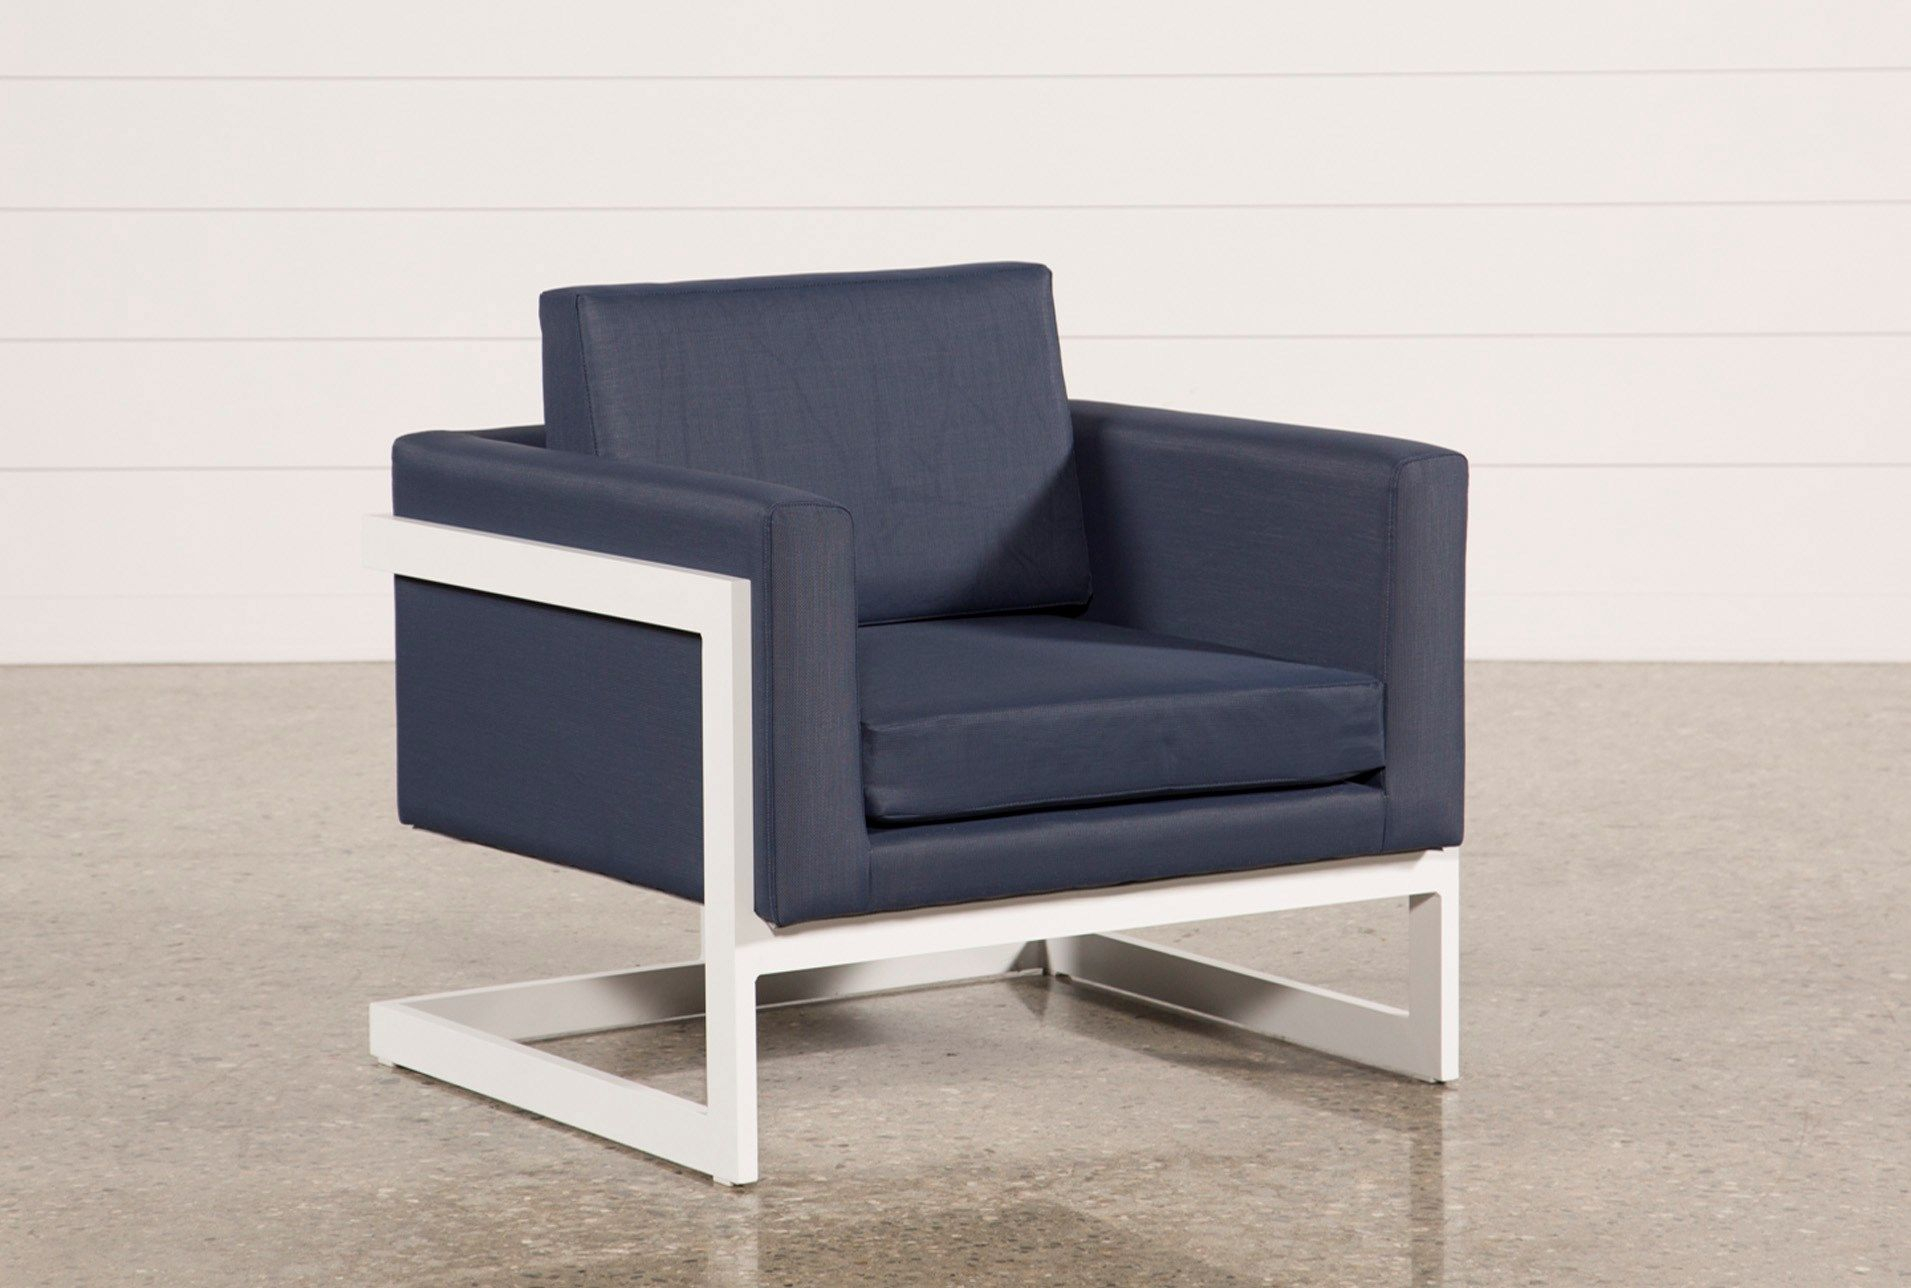 Outdoor Biscayne Ii Navy Lounge Chair | Patio | Pinterest | Patios Intended For Outdoor Koro Swivel Chairs (Photo 2 of 25)